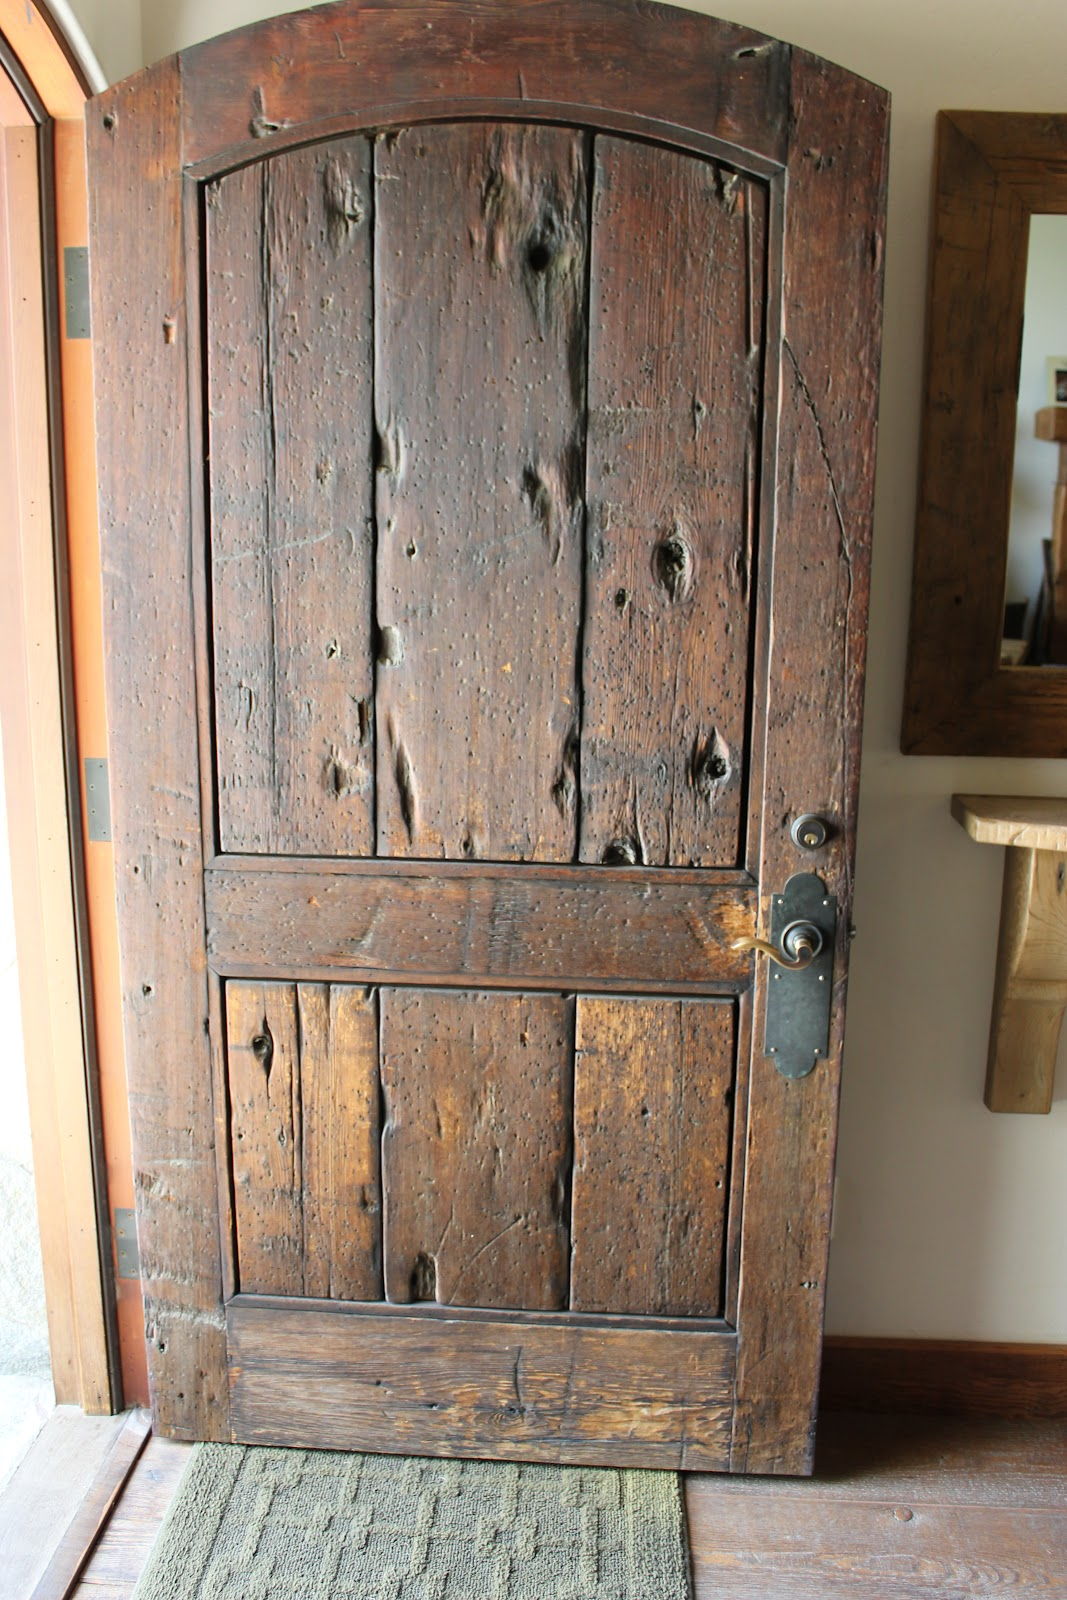 Vintage Entry Doors For Sale - Entry Doors: Vintage Entry Doors For Sale